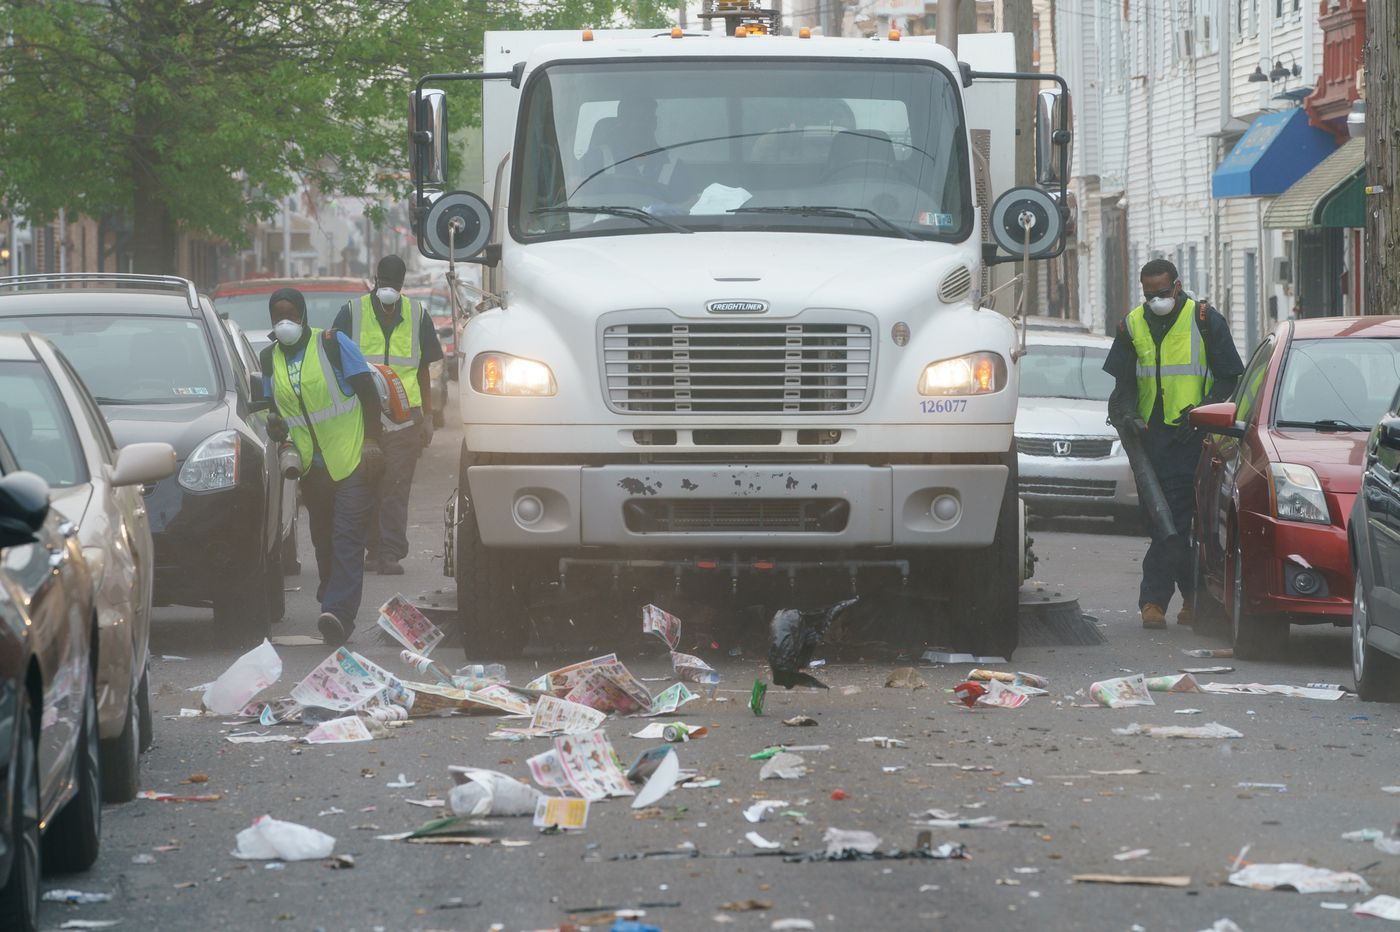 Surviving a trash tempest with South Philly's new street sweepers | Mike Newall